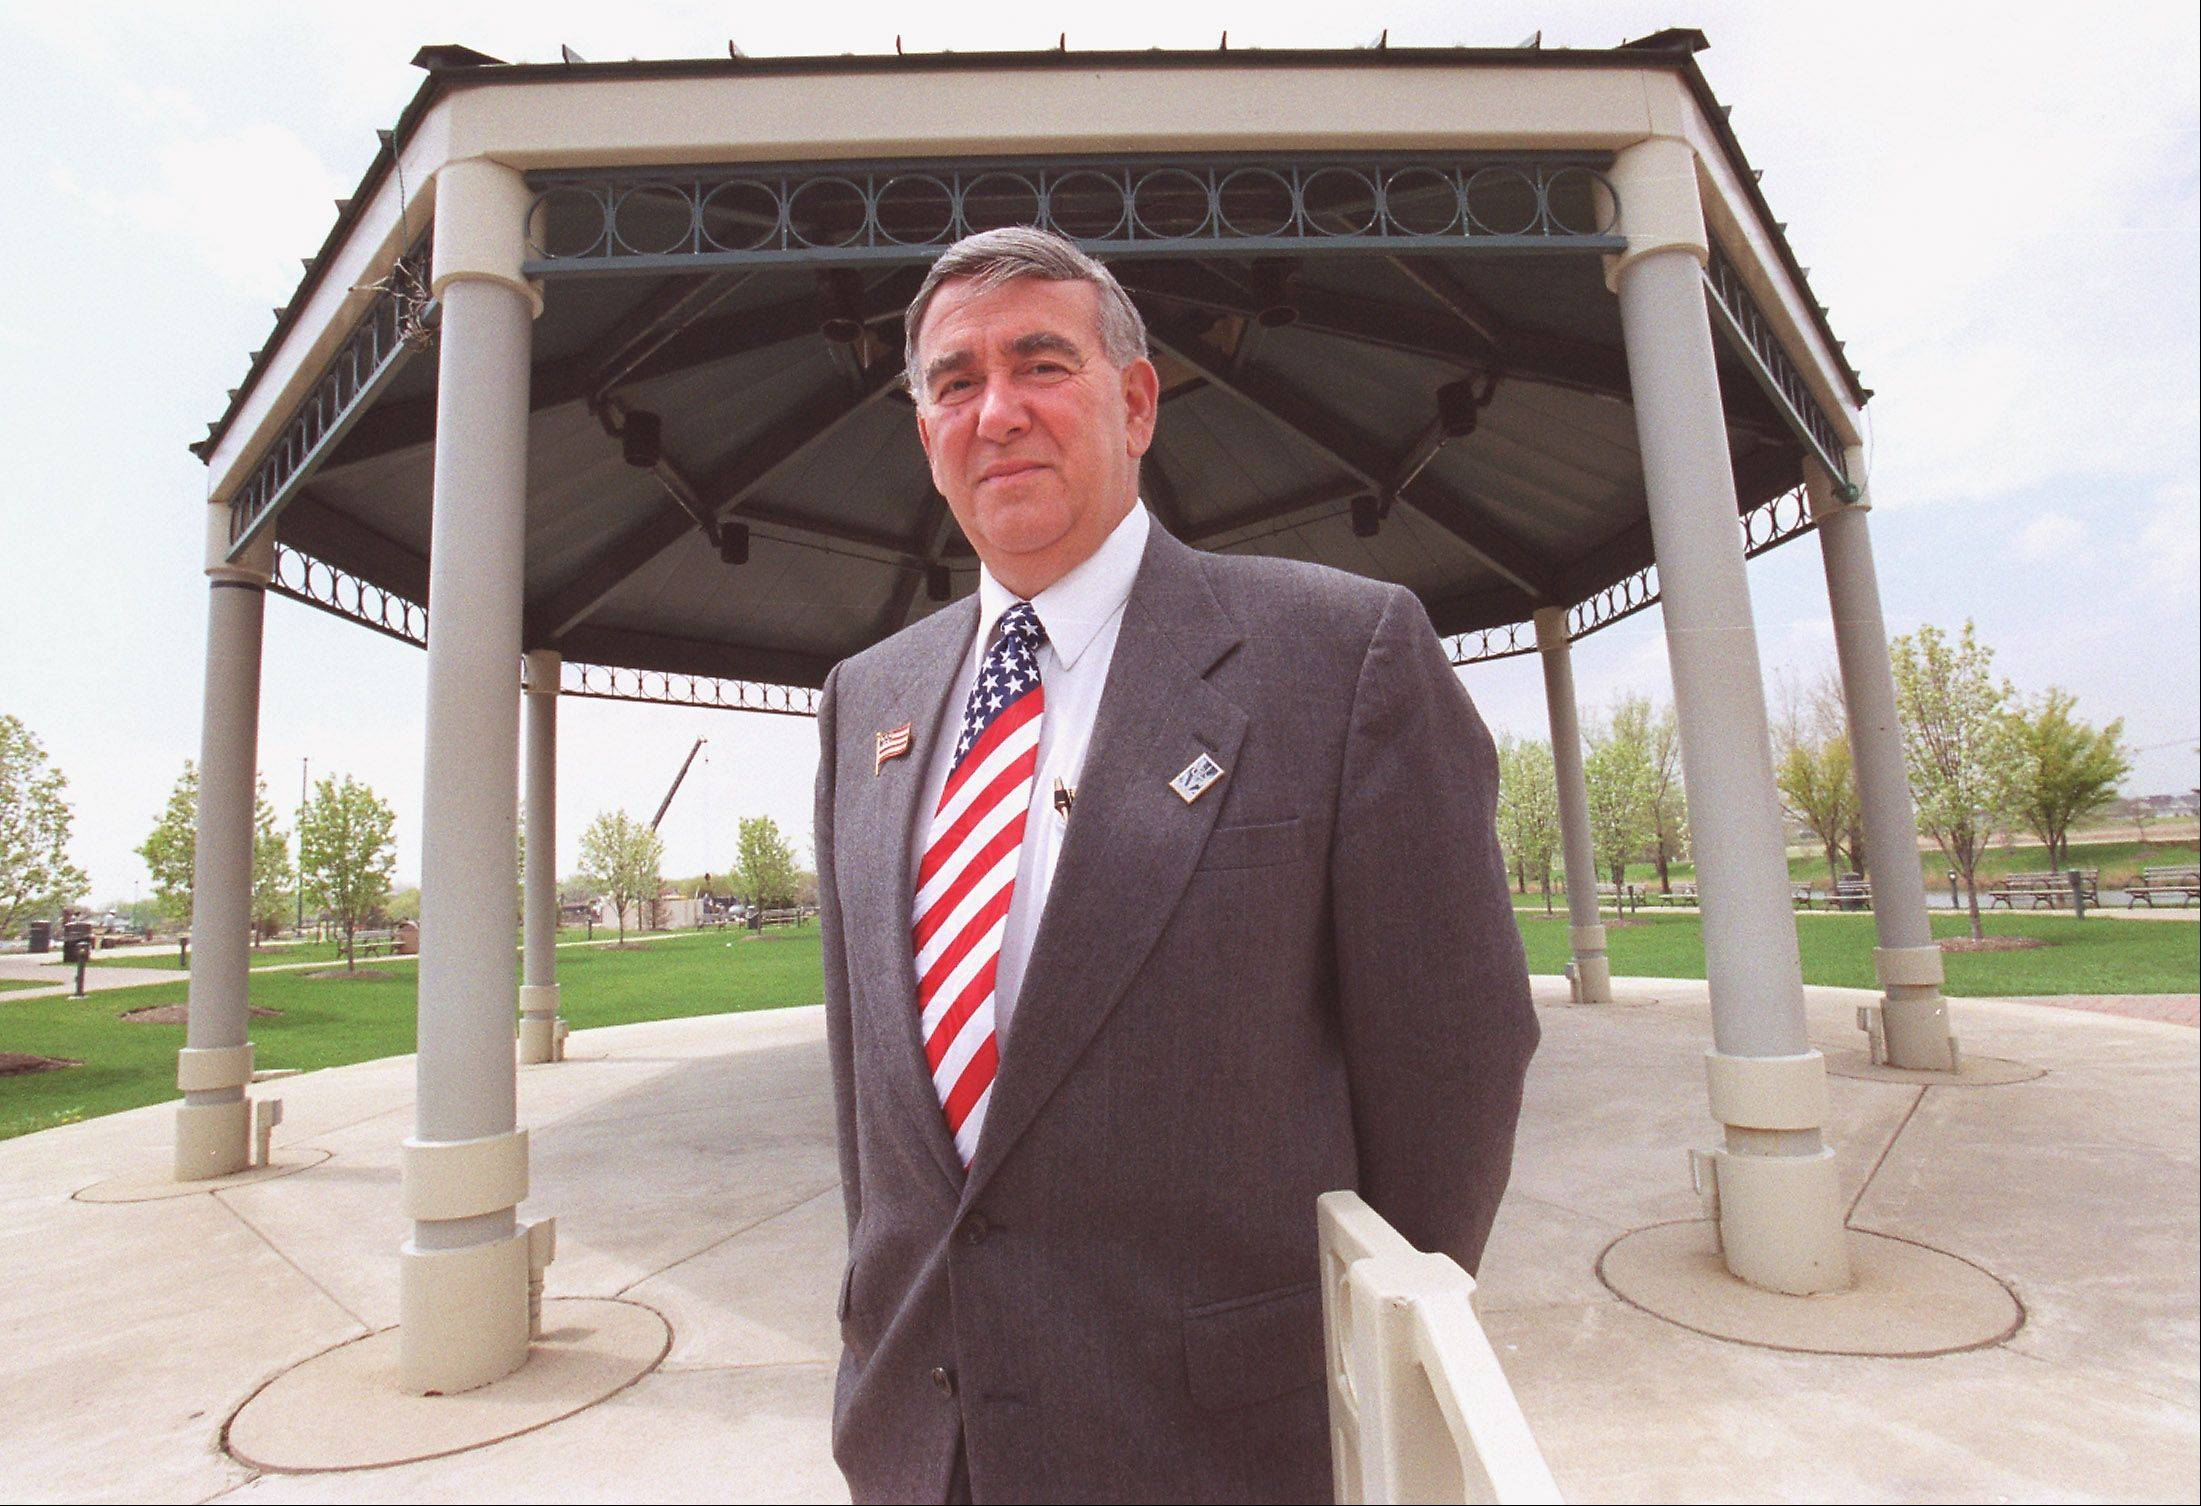 Former Carol Stream Village President Ross Ferraro has been credited with having the idea to create the Town Center, and officials decided in 2004 to name it after him. But it's possible his name could now be coming off two identification signs on site.